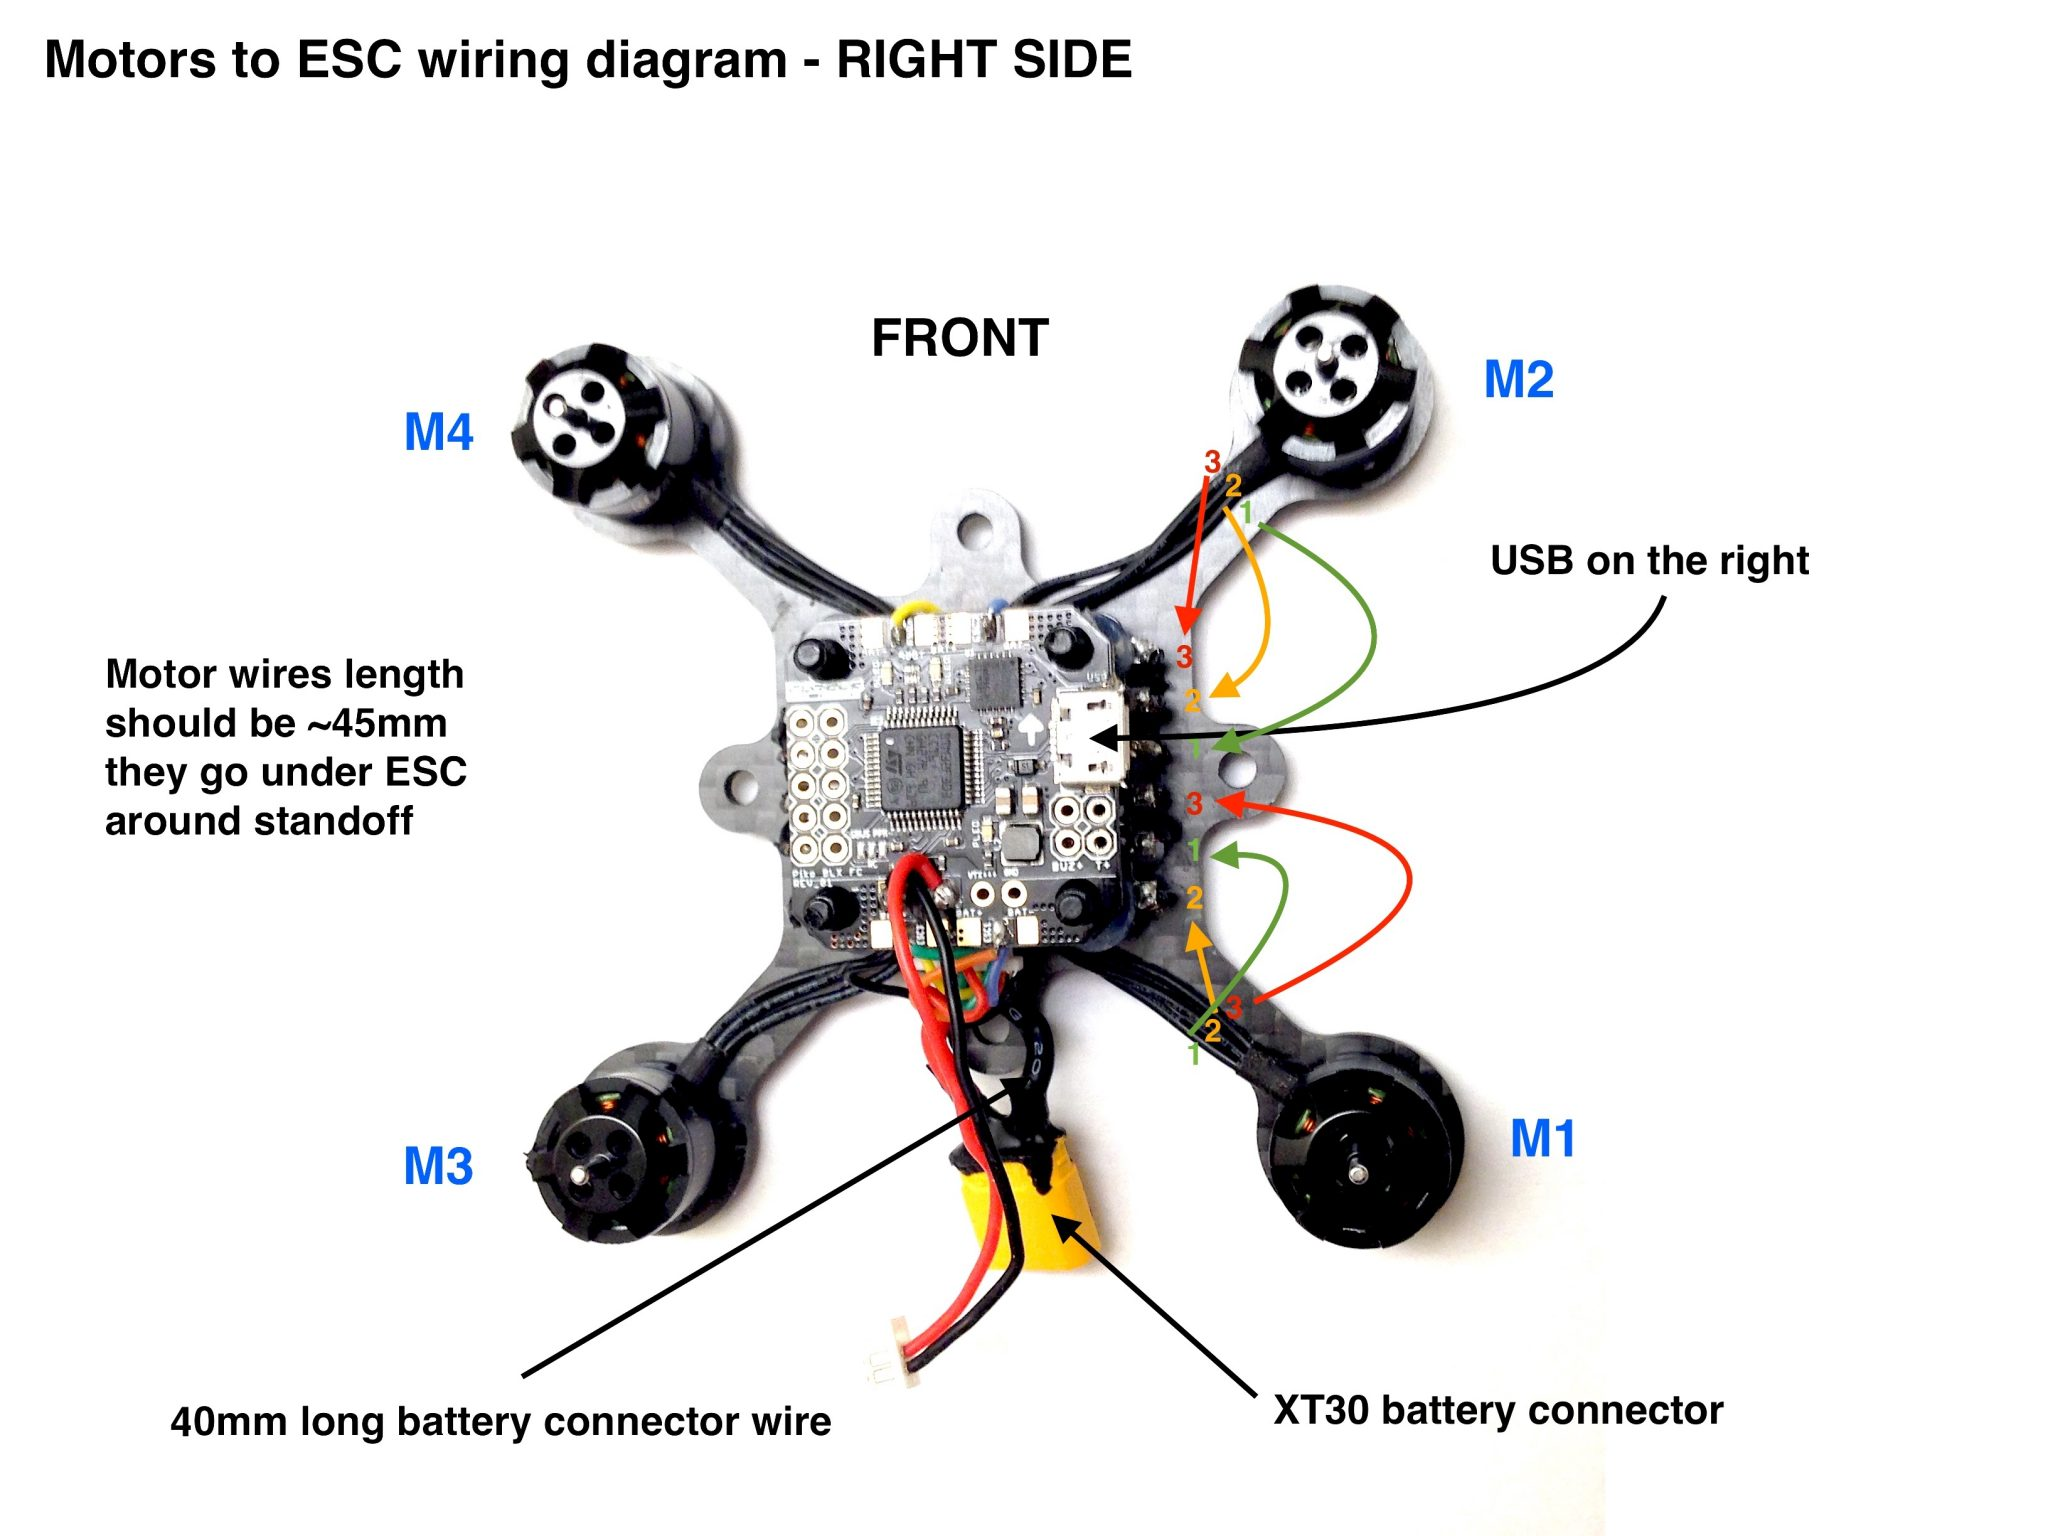 Flexrc Pico Core Motors Wiring Diagram Flex Rc